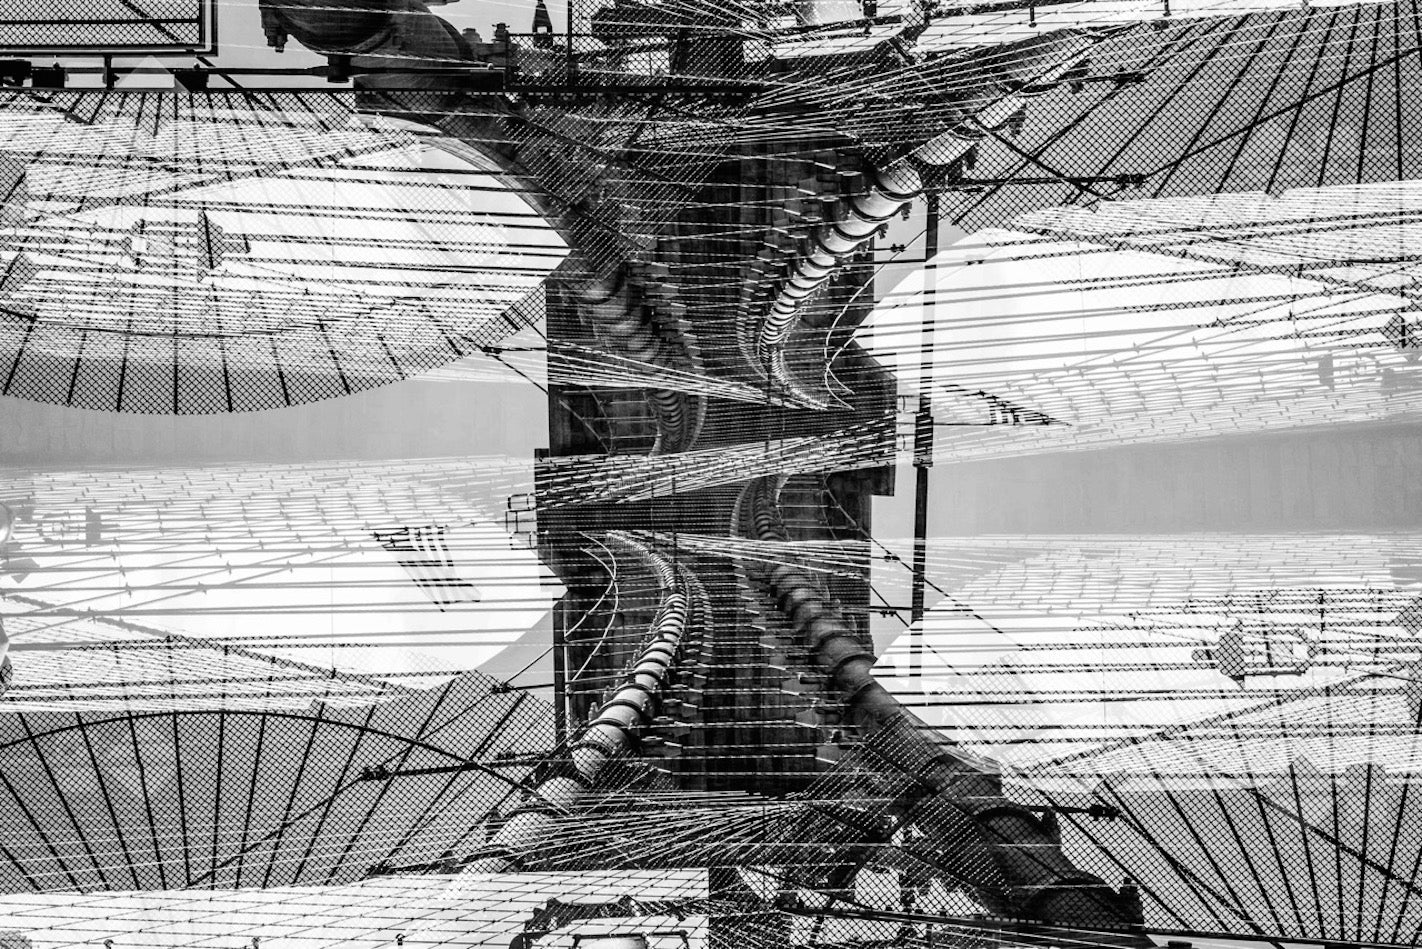 Alex Korolkovas - New York Upside Down Brooklyn Bridge